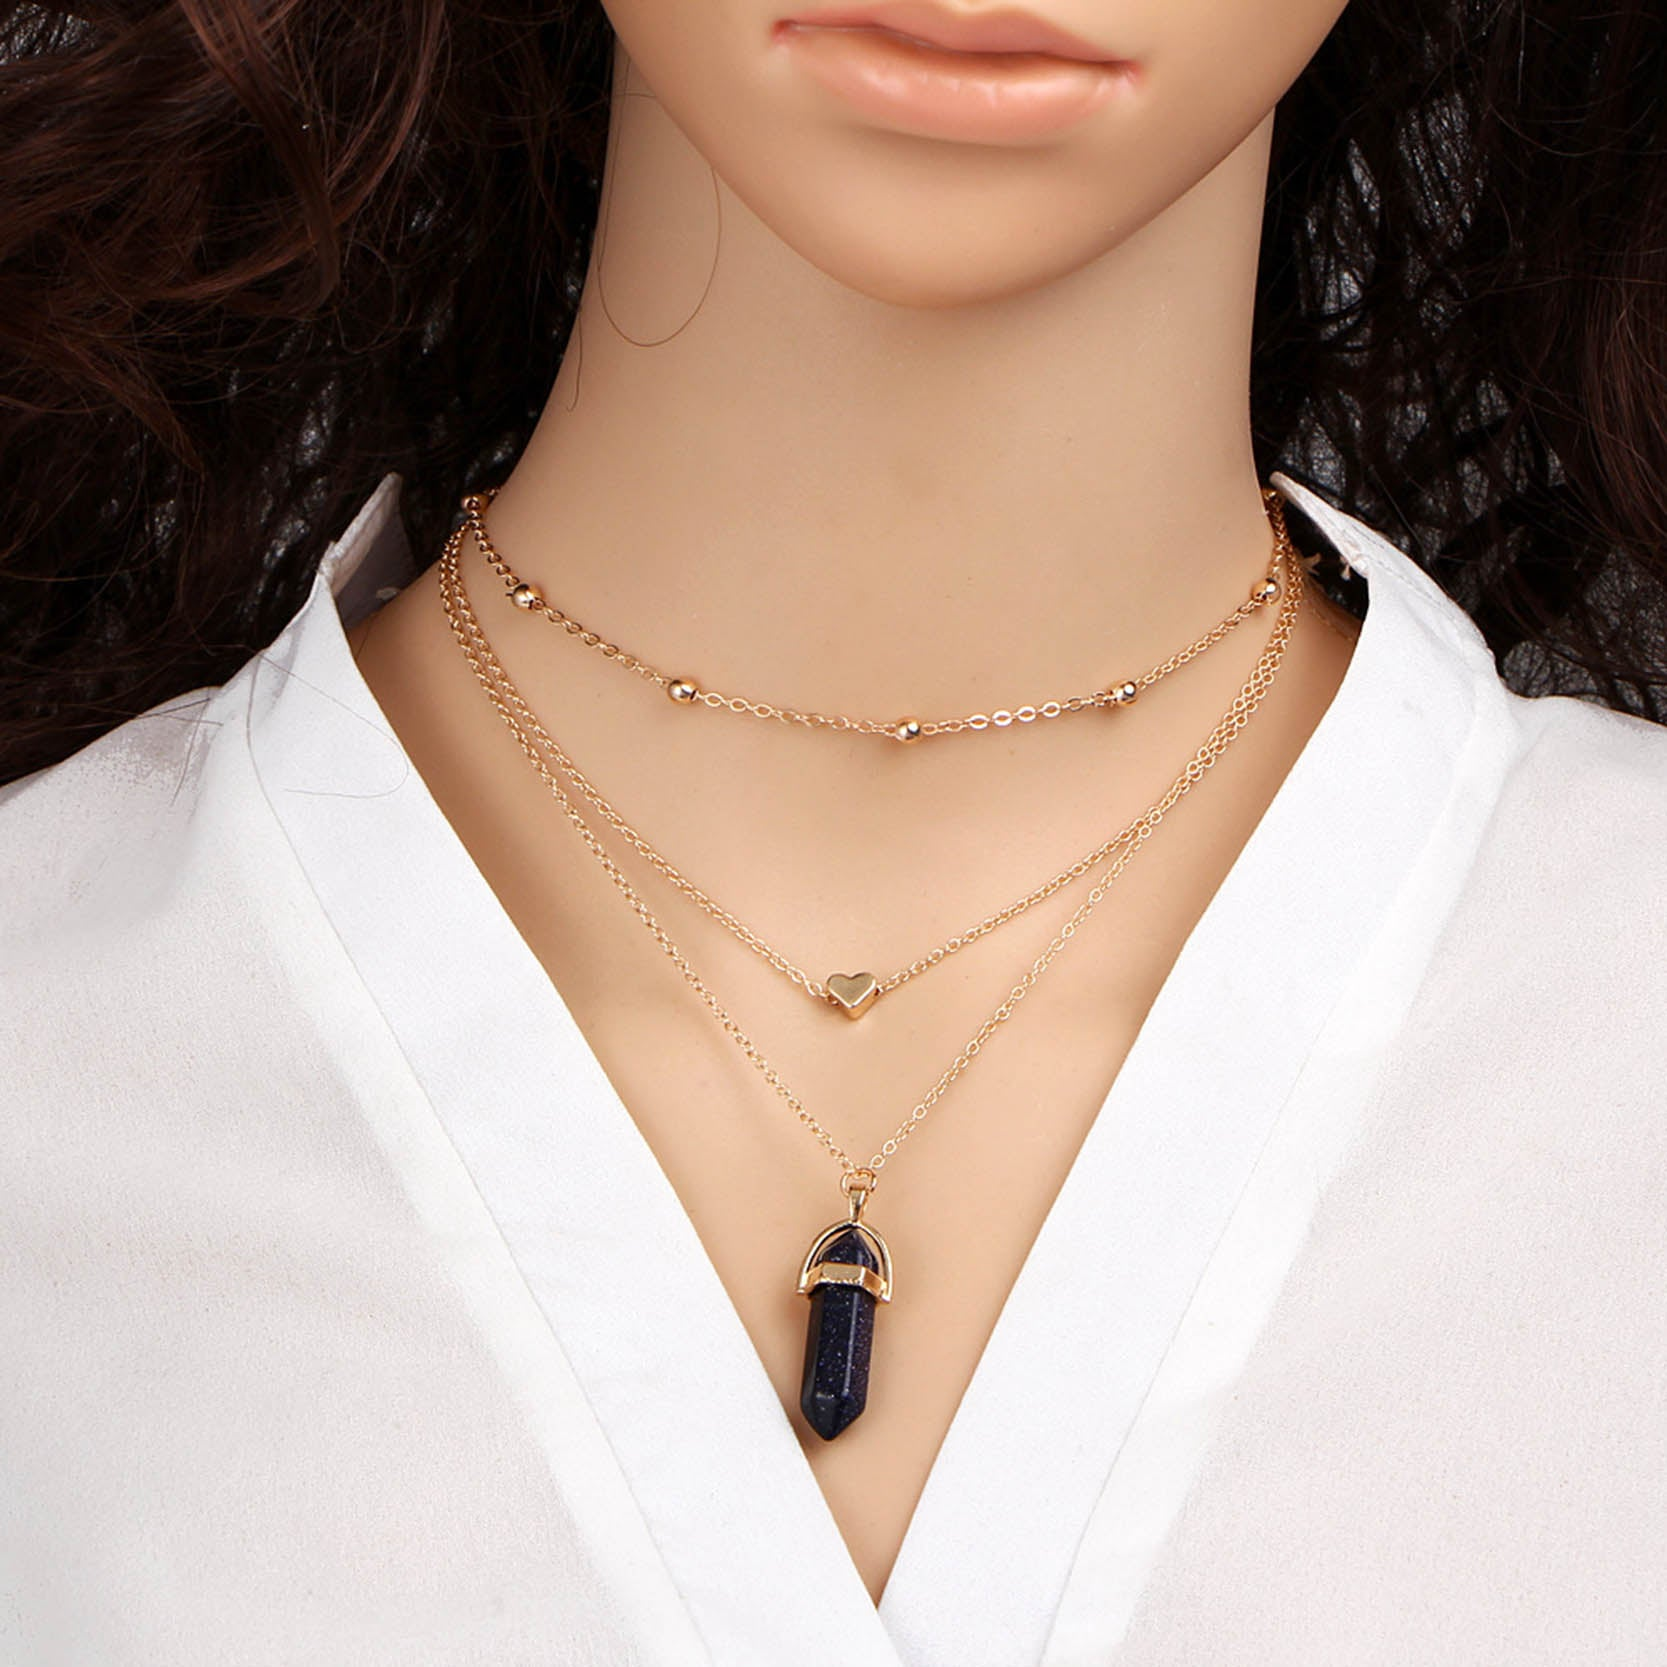 Triple Chain Crystal Choker Necklace - Hematite